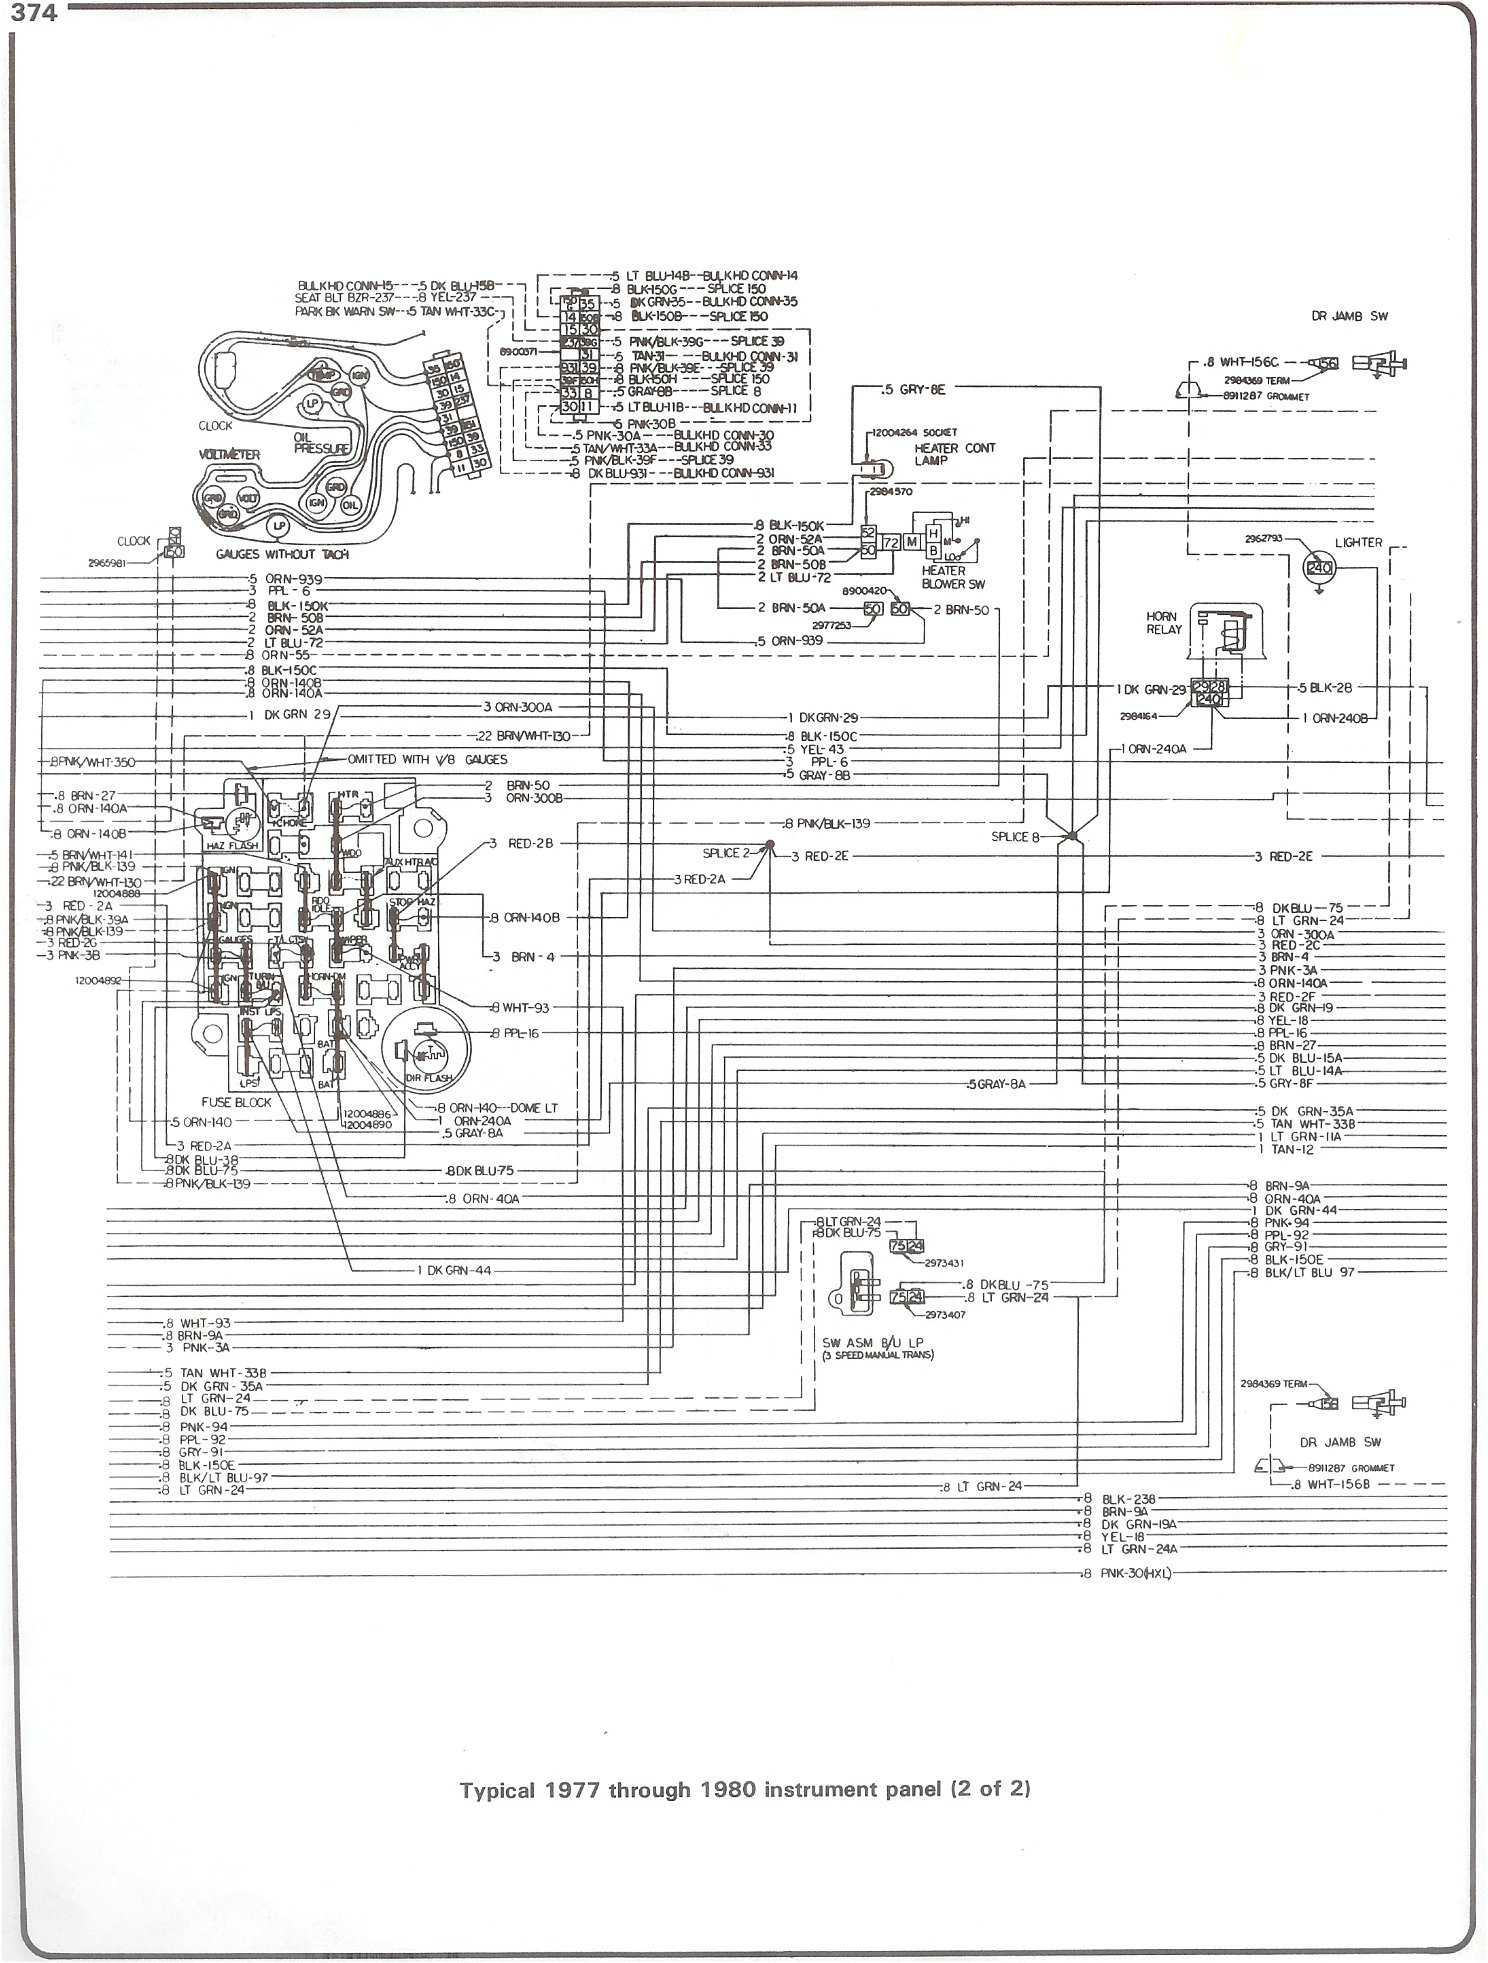 77 80_instrument_pg2 1978 chevy truck wiring diagram chevy malibu ignition wiring 1978 chevy truck fuse box diagram at gsmportal.co